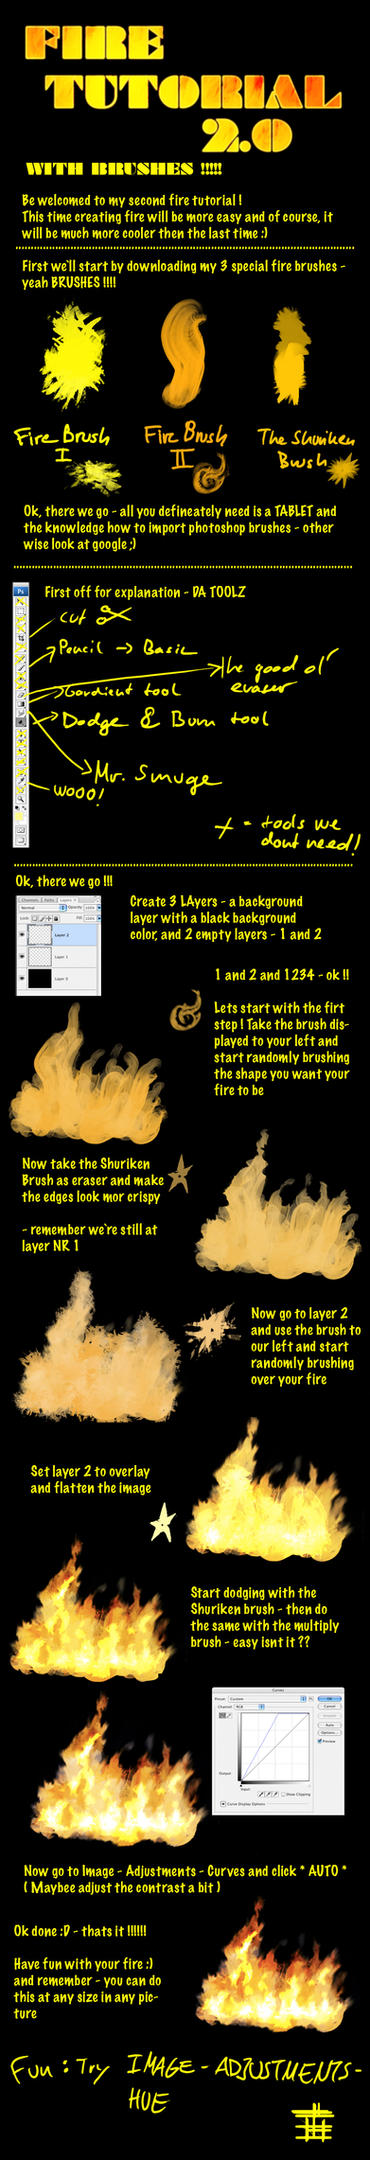 Fire Tutorial 2.0 by Hawk4